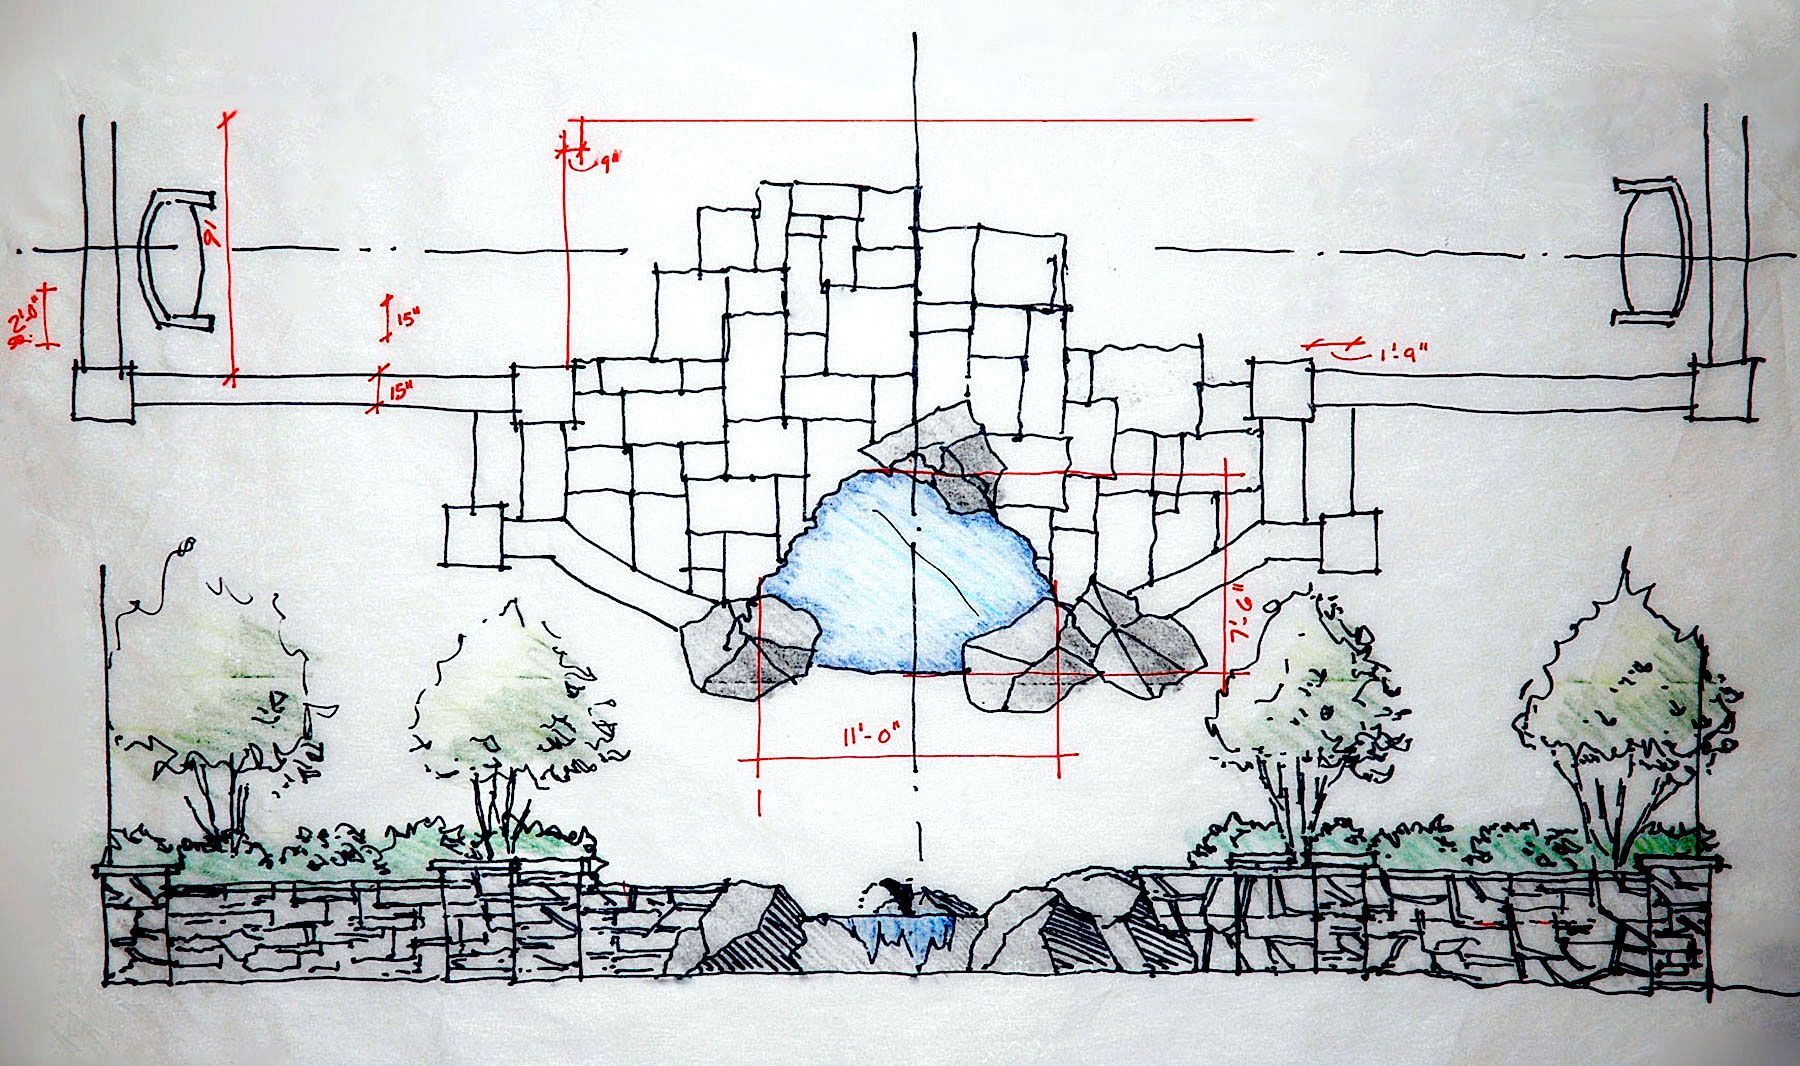 schematic-water-feature-elevation.jpg